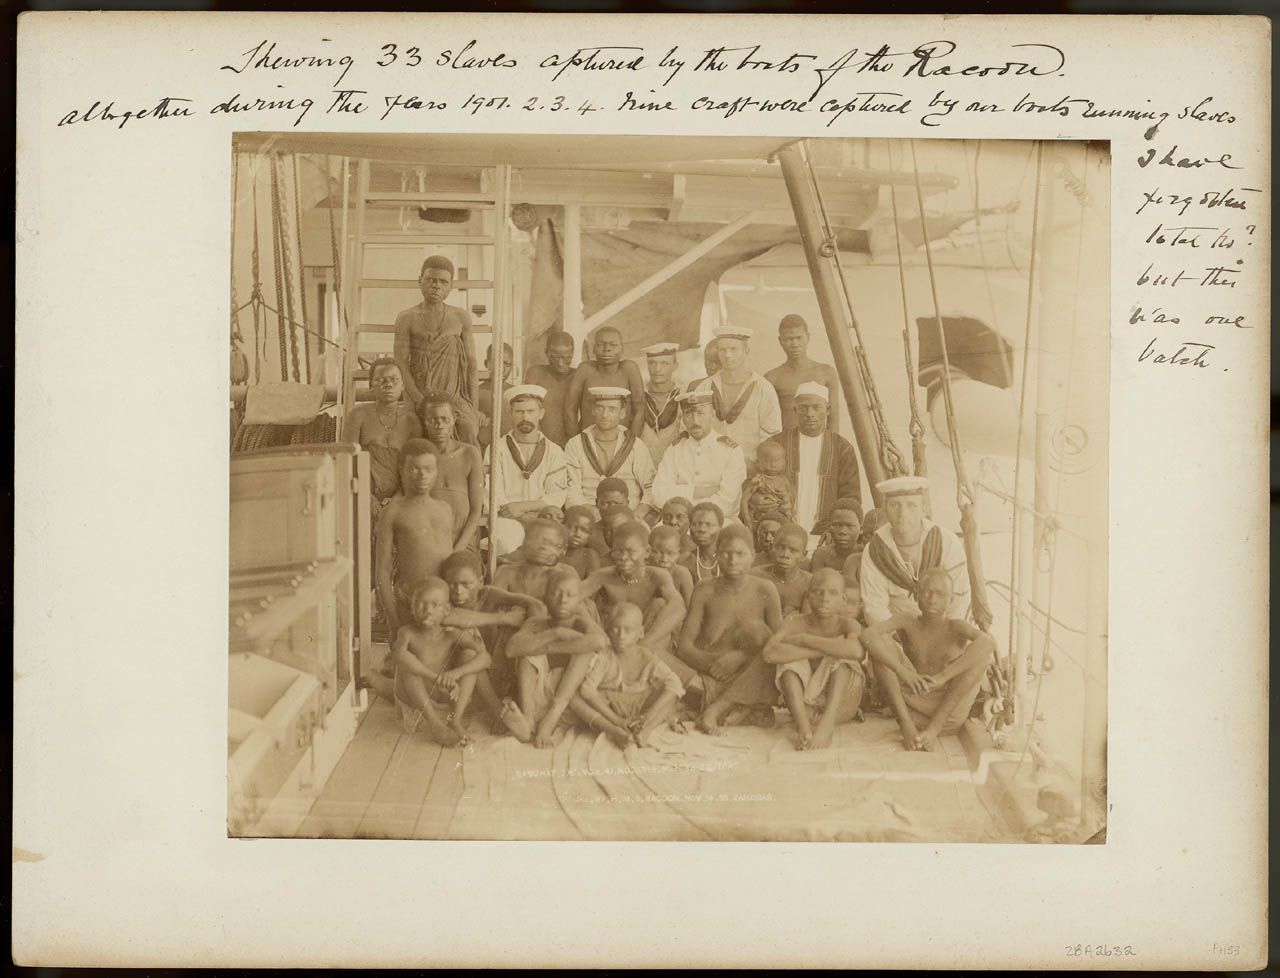 Showing 33 slaves captured by the boats of the 'Racoon' - National Maritime Museum